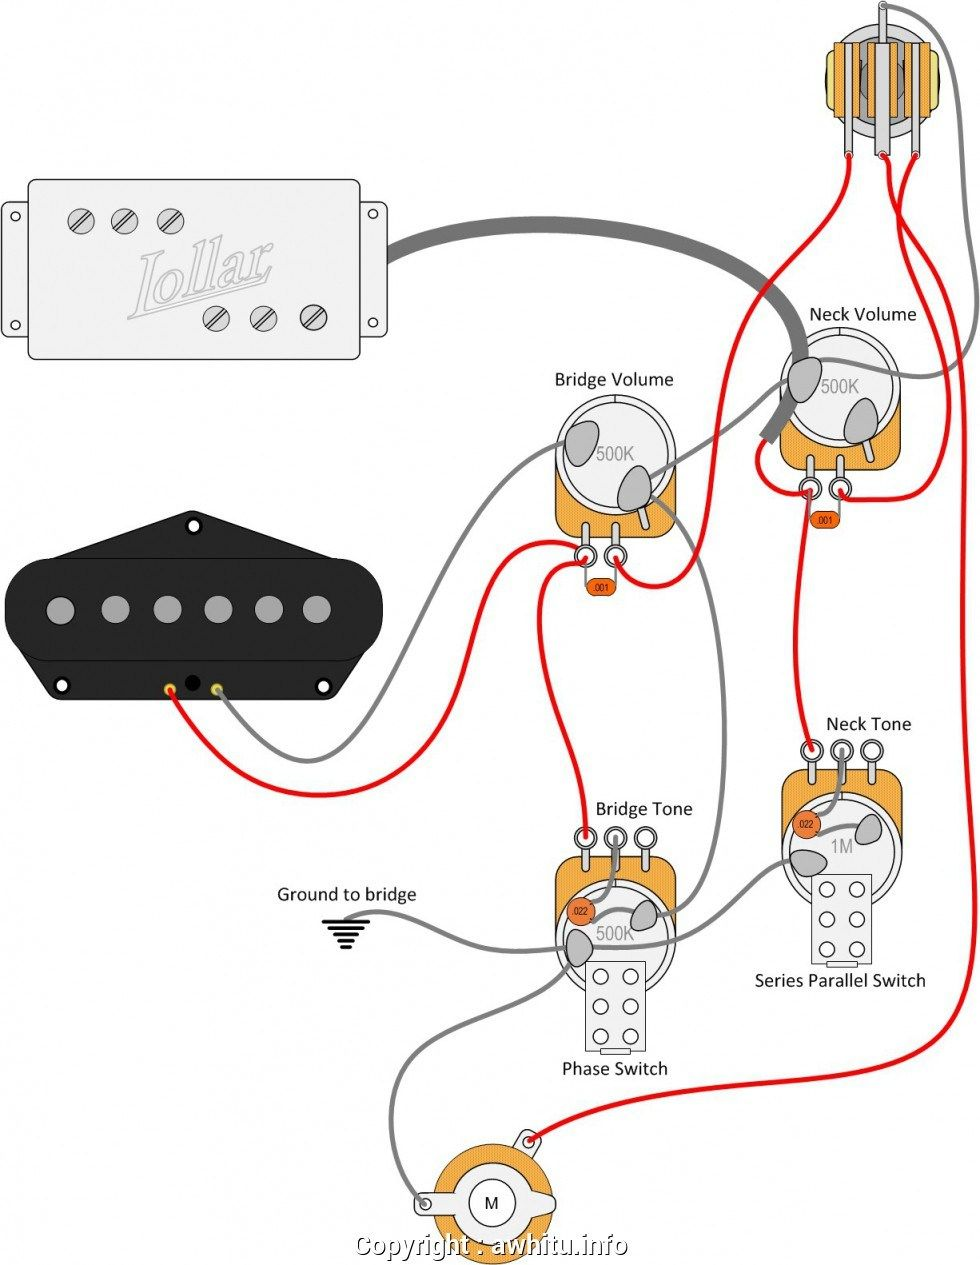 [DIAGRAM_3US]  Telecaster Custom Wiring Diagram - bookingritzcarlton.info | Telecaster  custom, Diy musical instruments, Telecaster | Fender 62 Telecaster Wiring Diagram |  | Pinterest